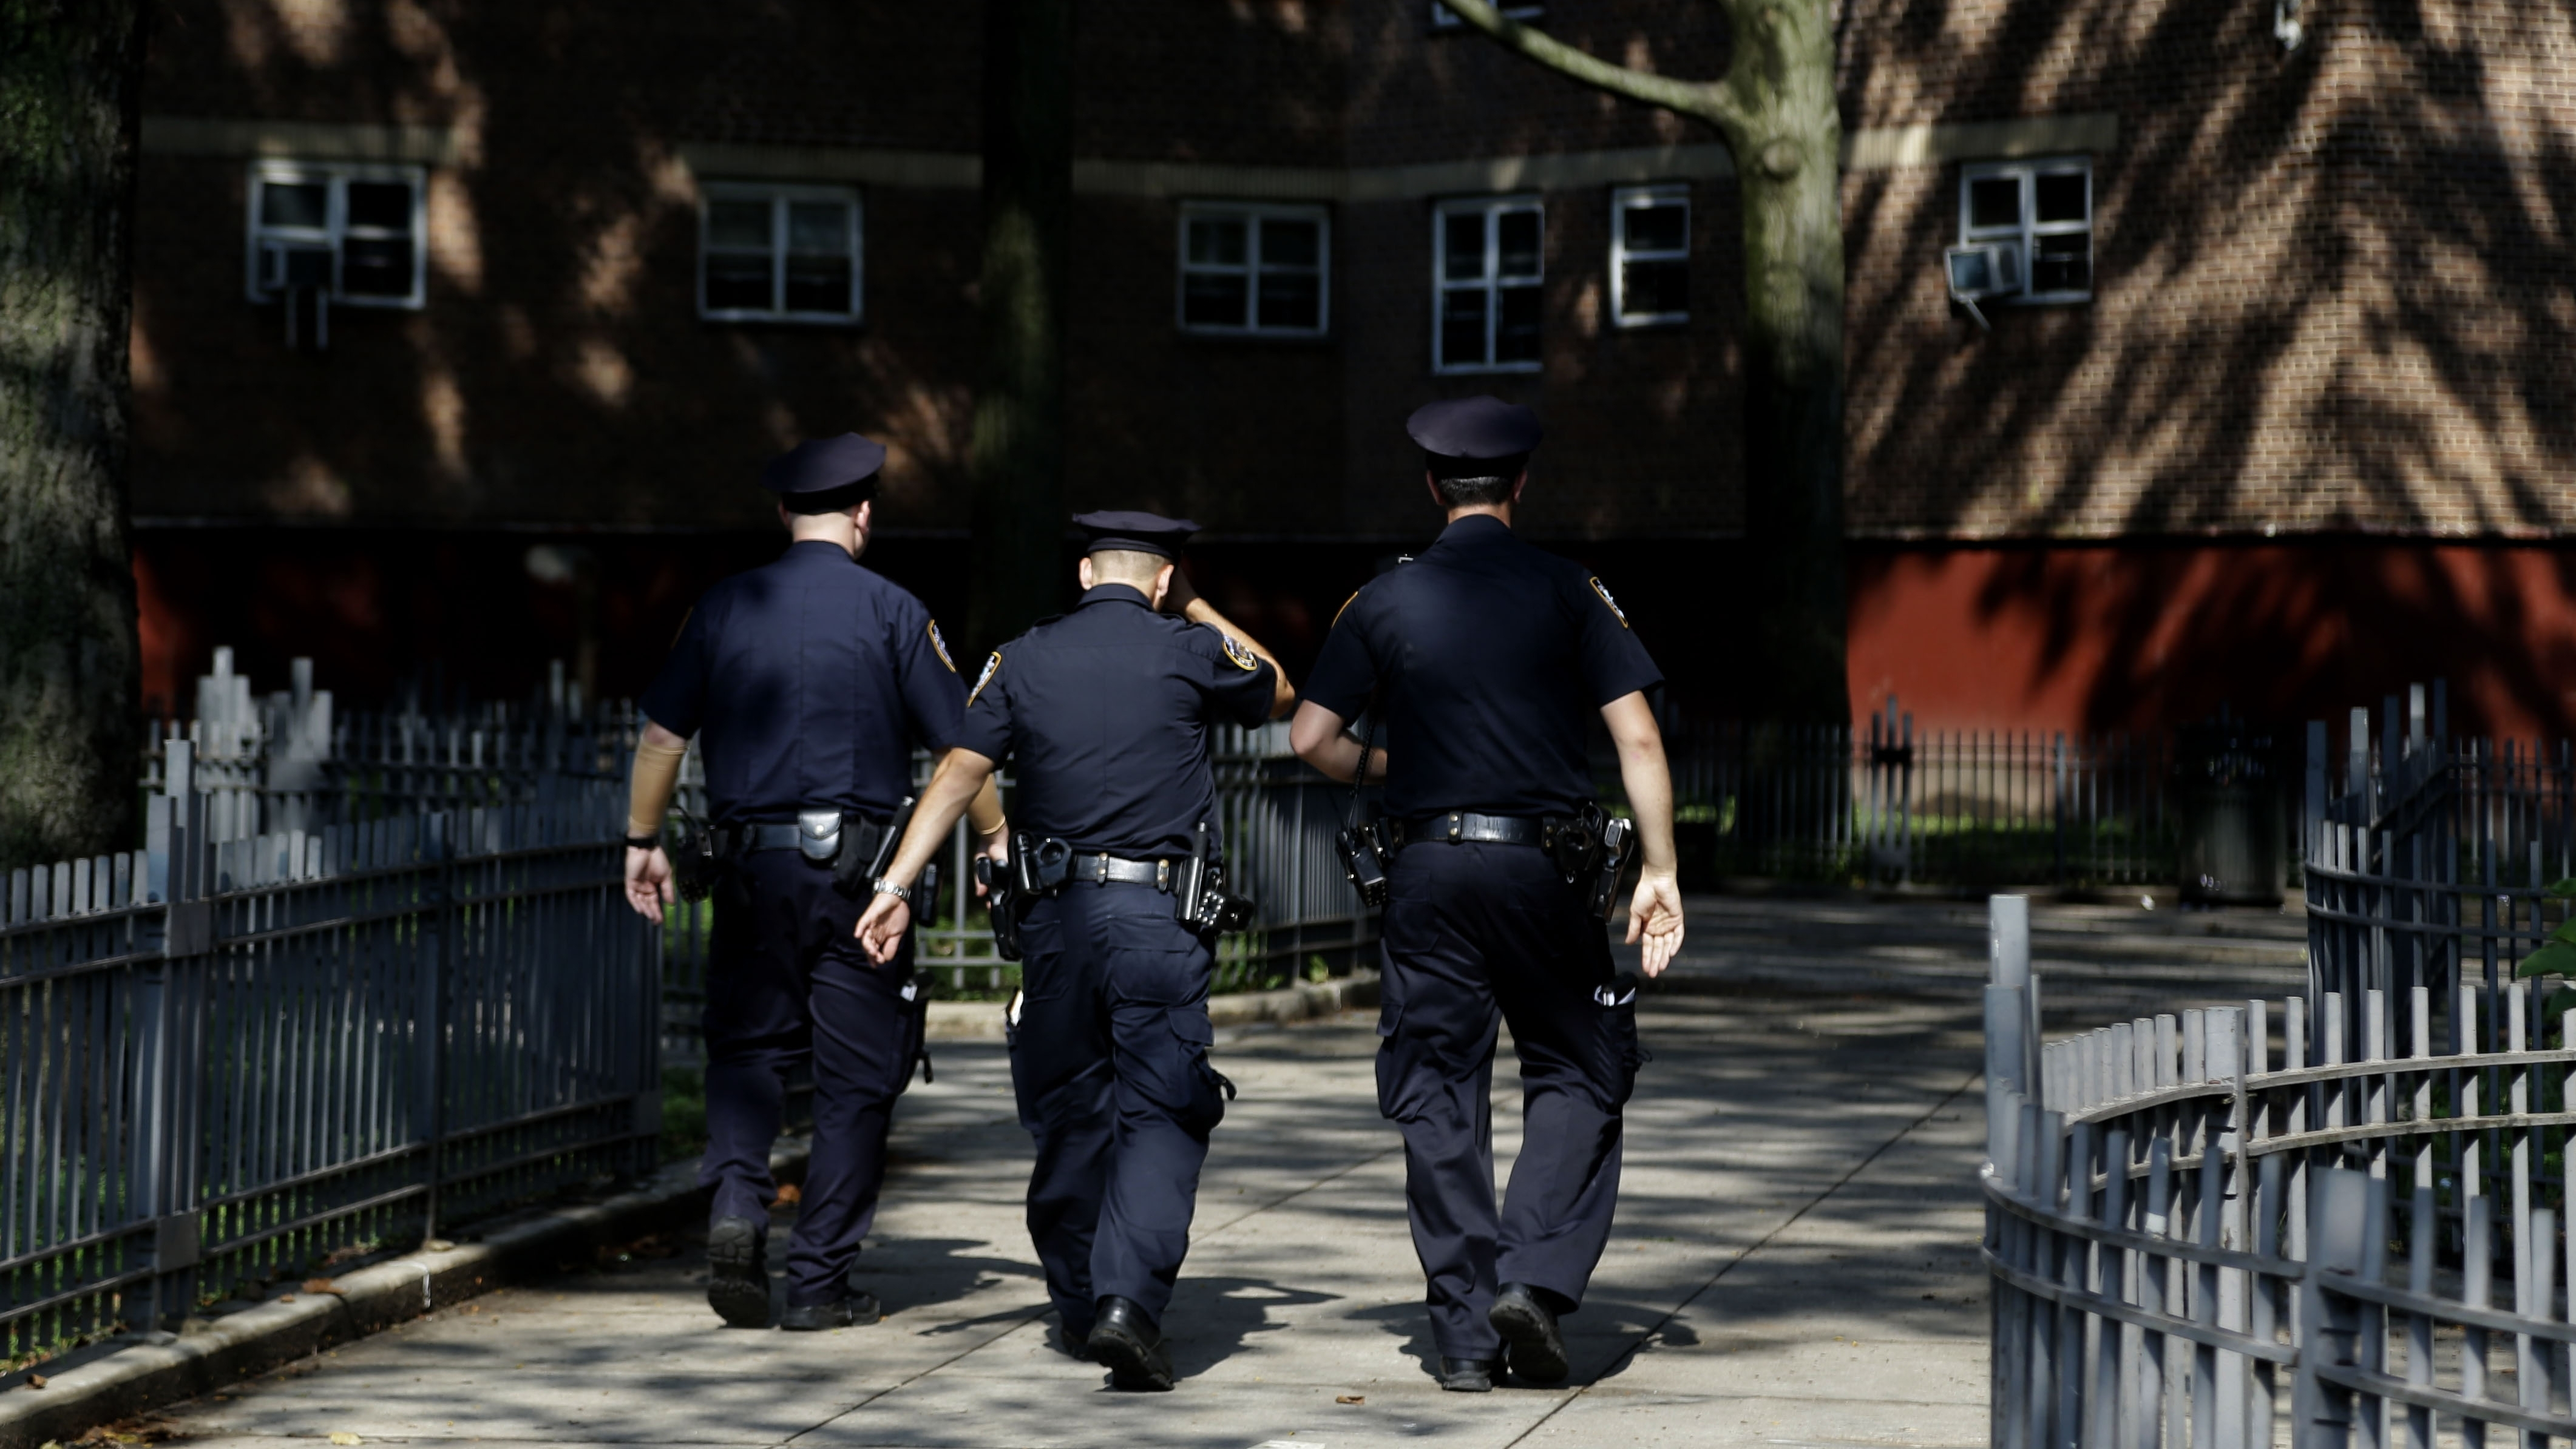 N.Y. Stop-And-Frisk Reforms On Hold For New Year, New Mayor